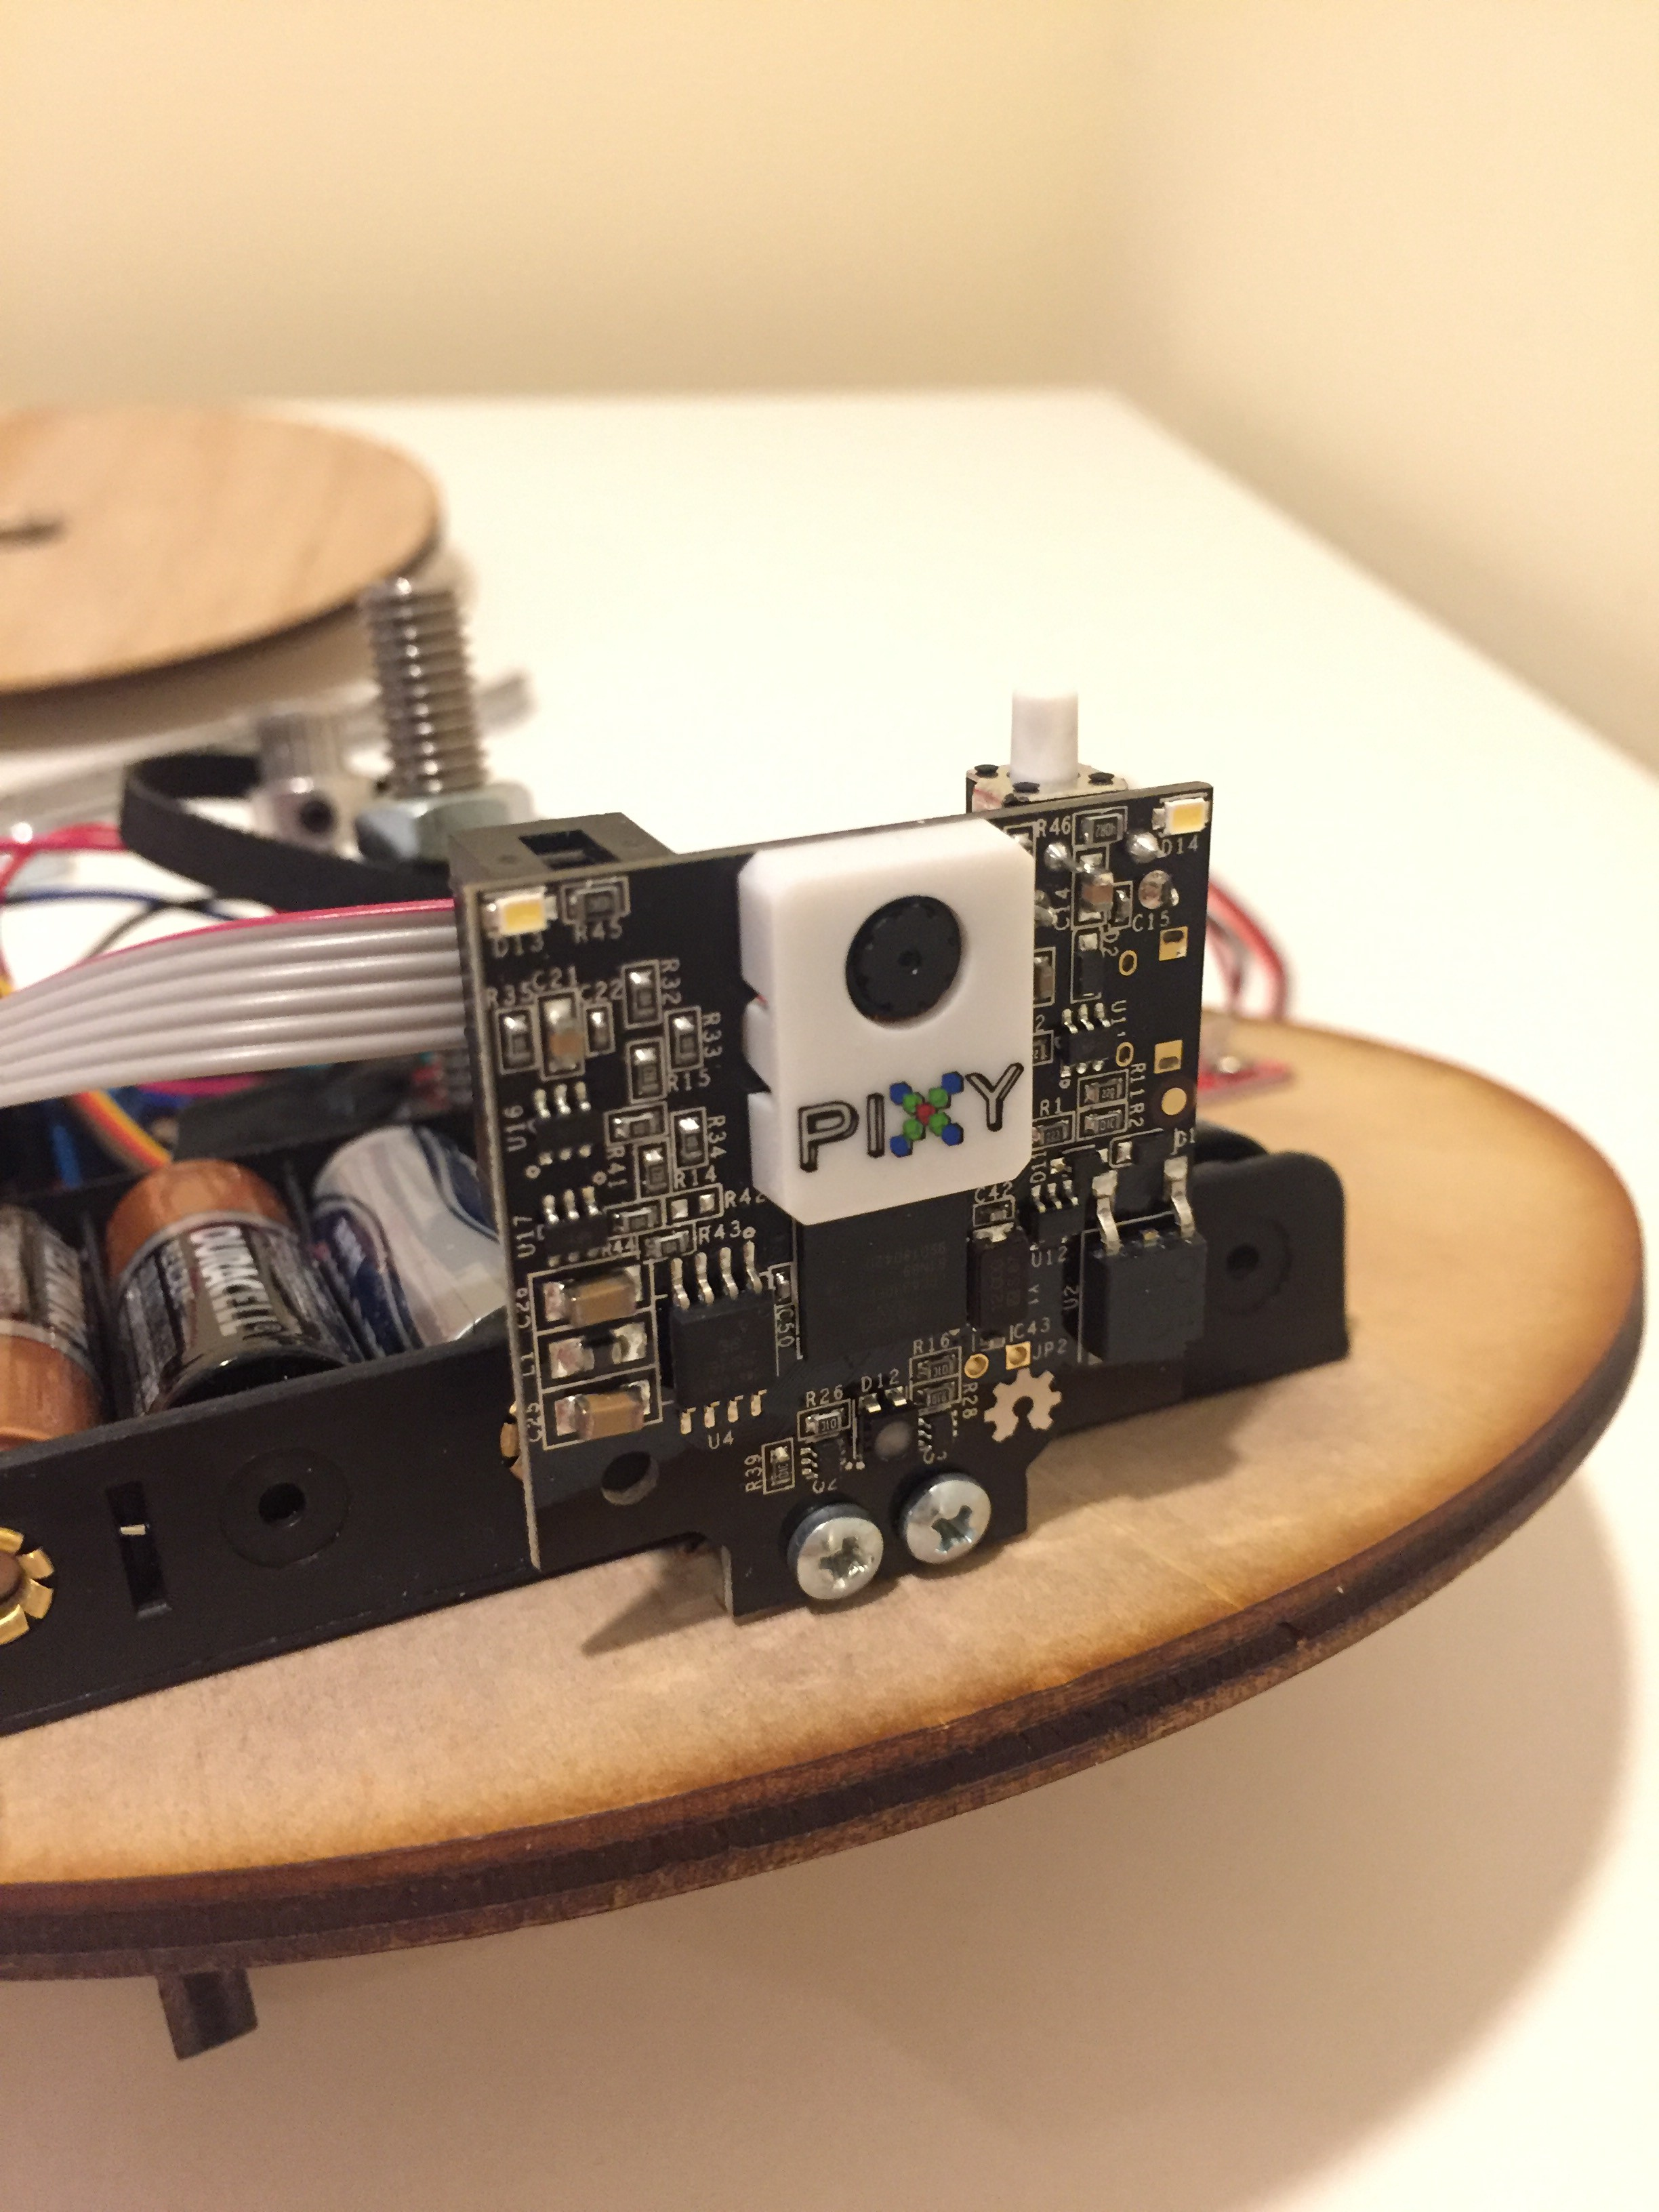 Auto Tracking Mounting Plate using Pixycam - Mark Butzer